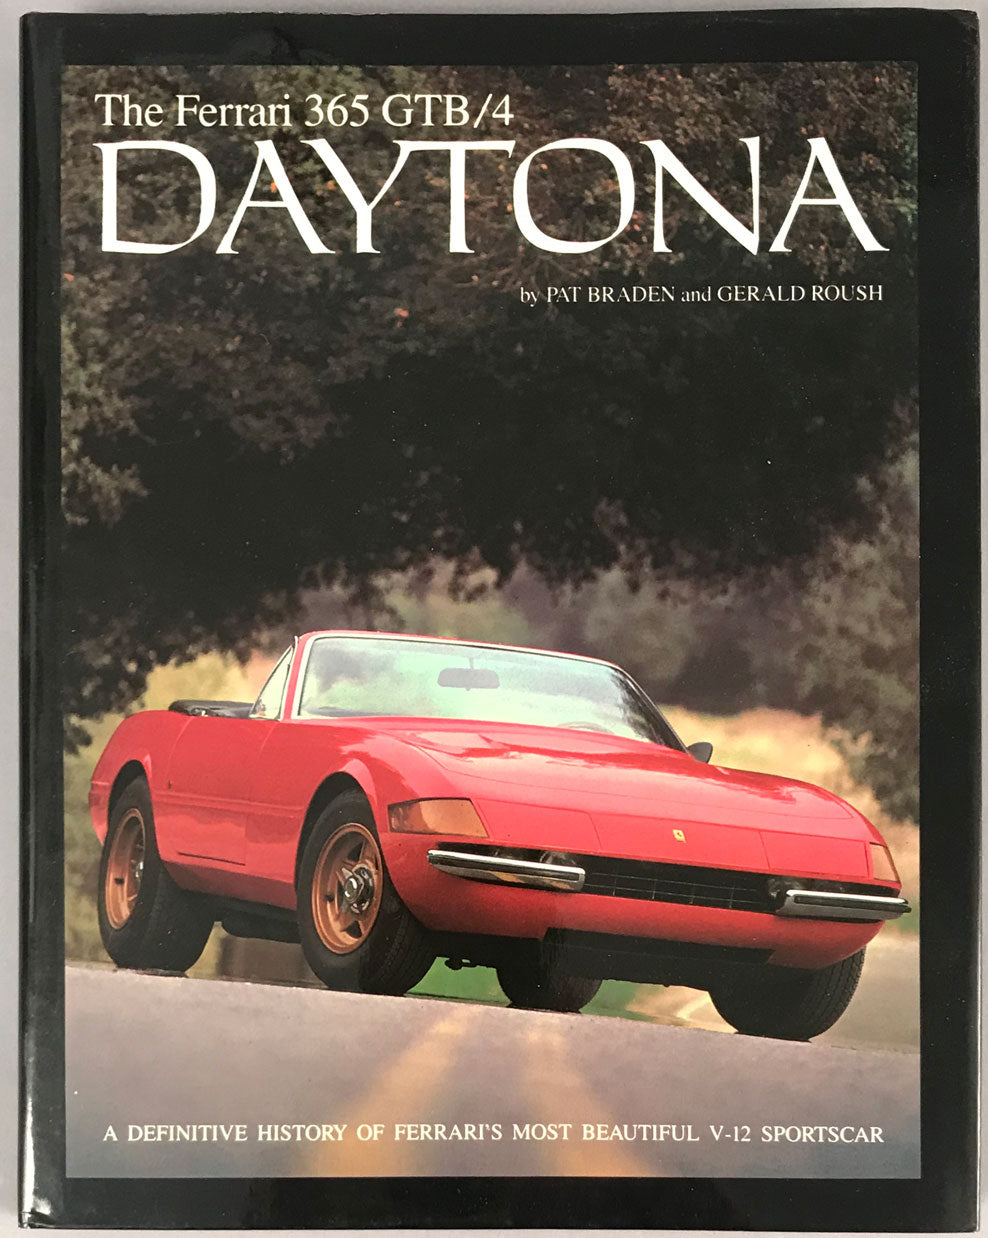 The Ferrari 365 GTB/4 Daytona book by Pat Braden and Gerald Roush